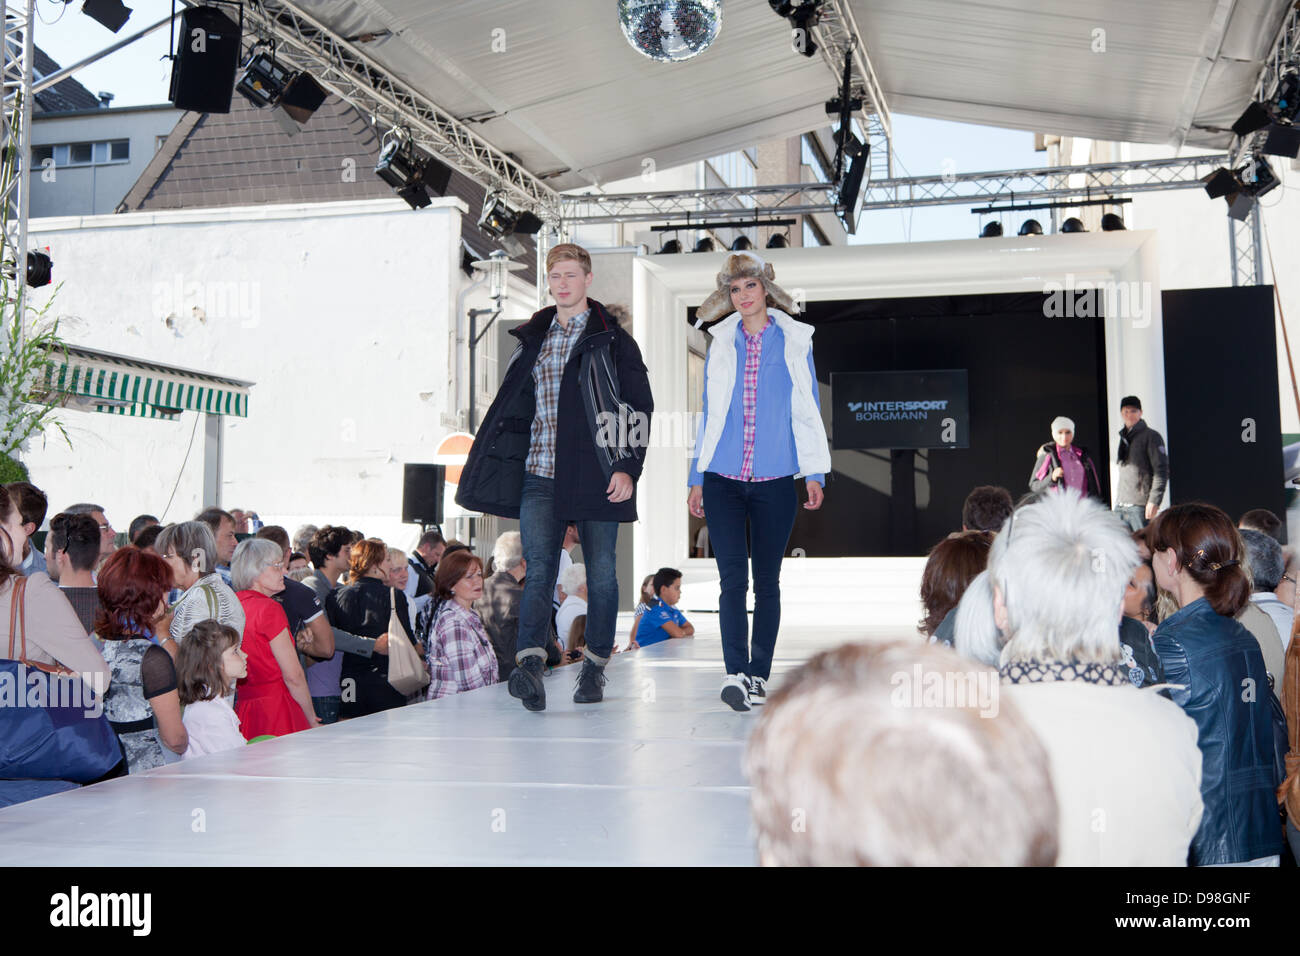 Male and female fashion models being watched by the public on an outdoor catwalk at the open-air event of Krefeld - Stock Image